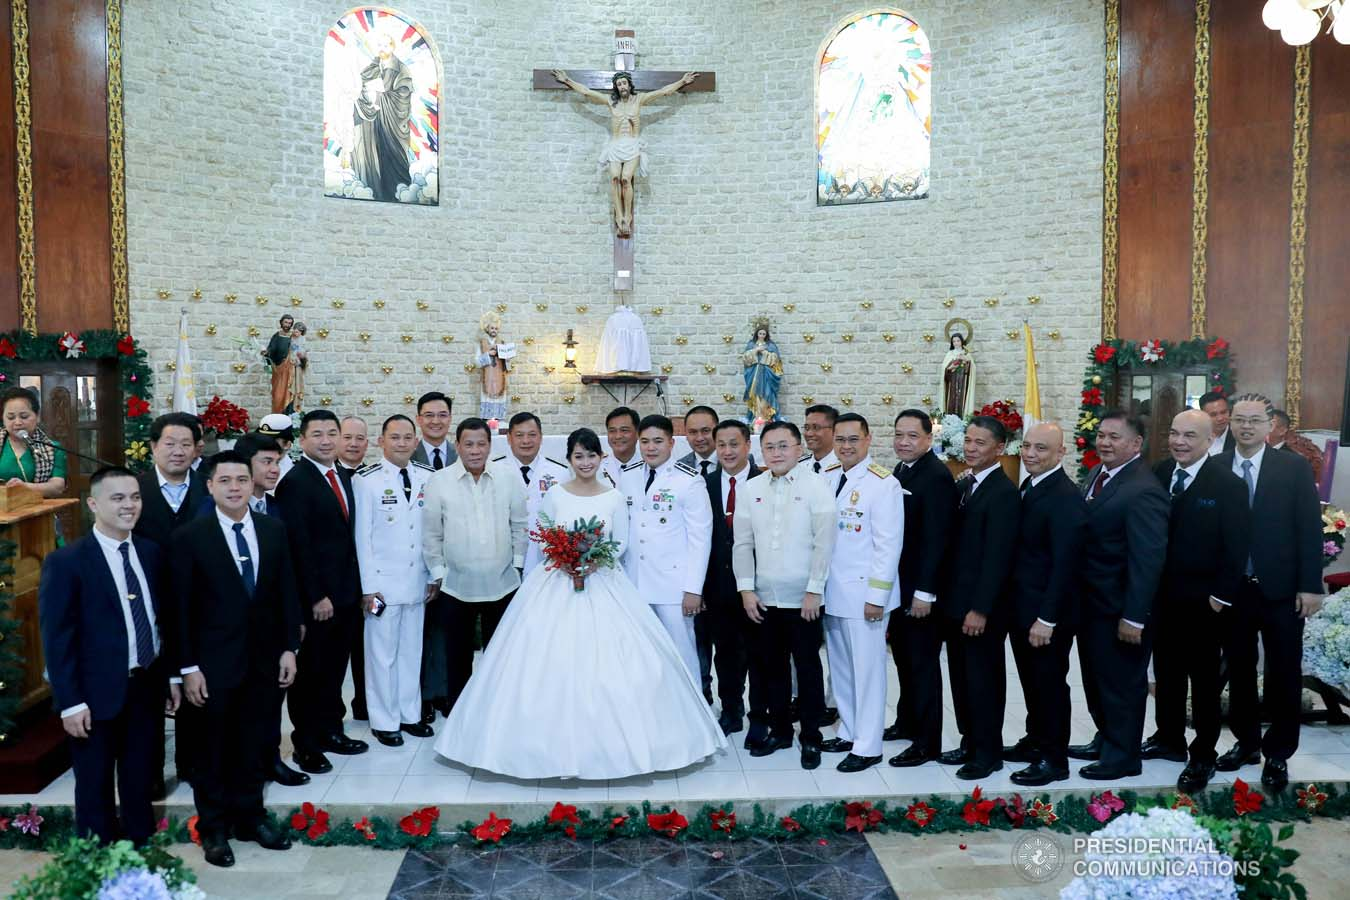 President Rodrigo Roa Duterte and daughter Davao City Mayor Sara Duterte-Carpio pose for posterity with newlyweds Makkaria and First Lieutenant James Estoesta and other distinguished guests during the wedding at the St. Ignatius Chapel in Fort Gen. Gregorio H. del Pilar, Baguio City on December 8, 2019. VALERIE ESCALERA/PRESIDENTIAL PHOTO